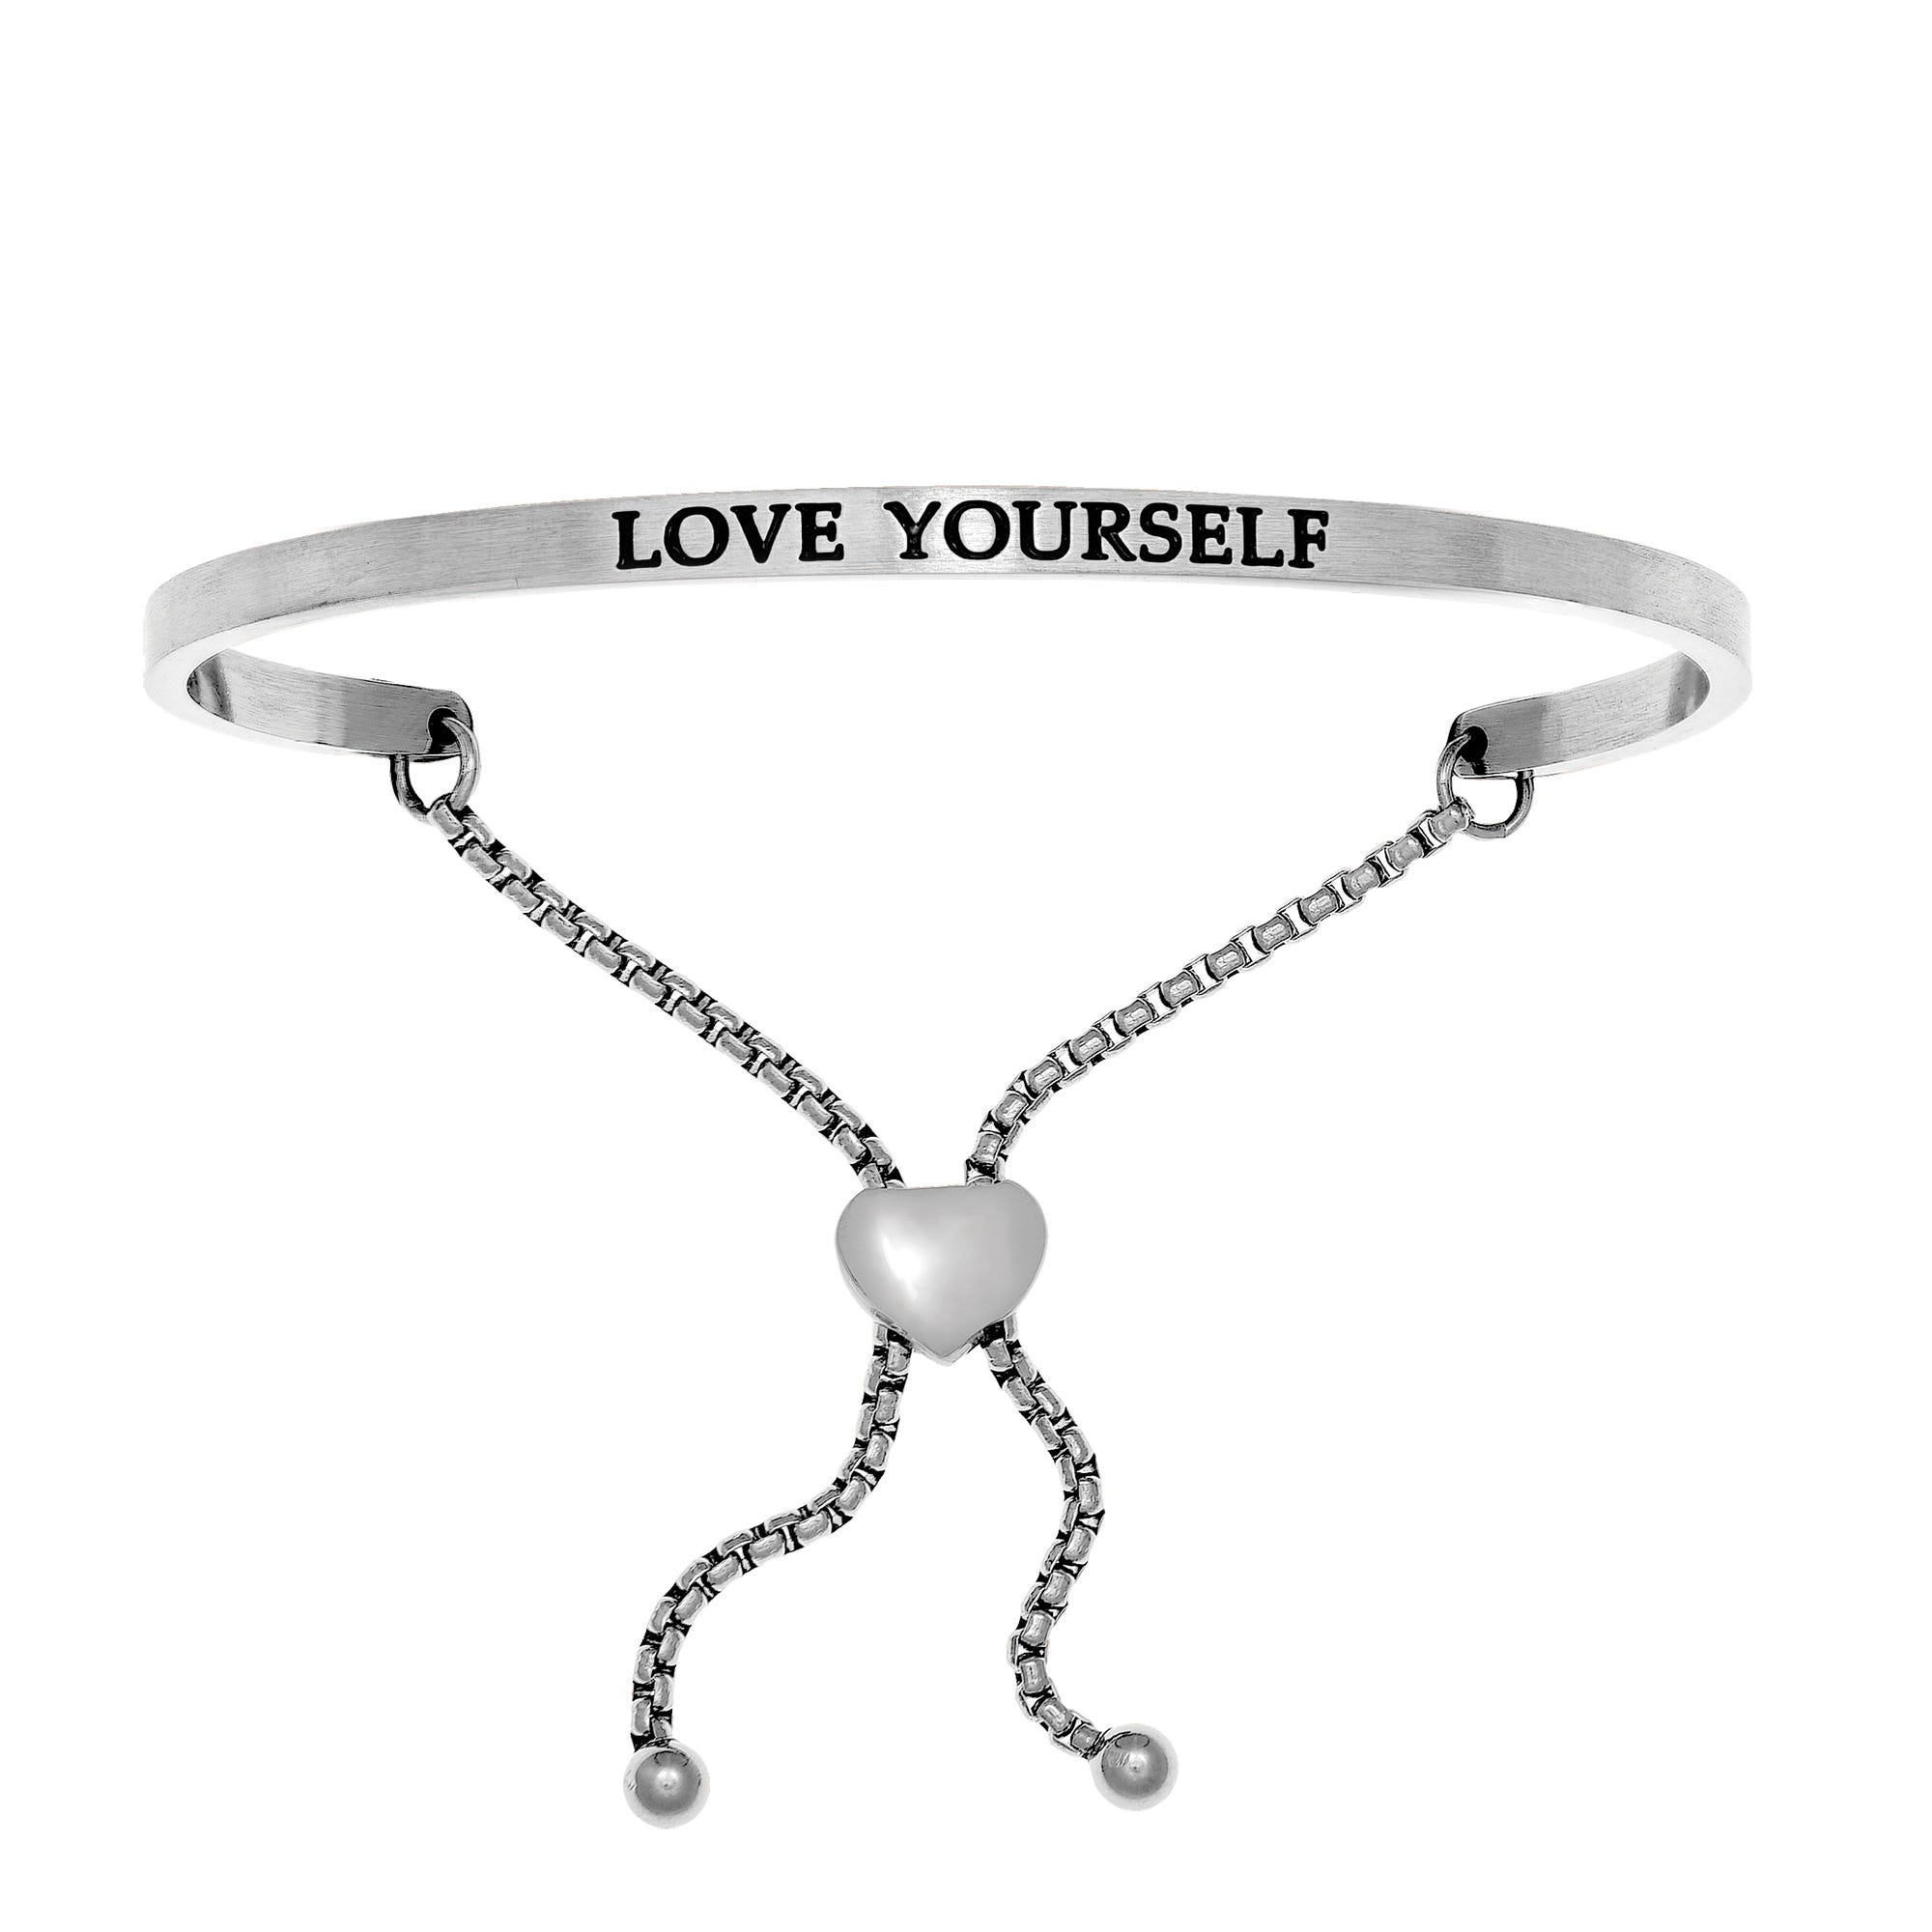 Love Yourself. Intuitions Bolo Bracelet in White Stainless Steel